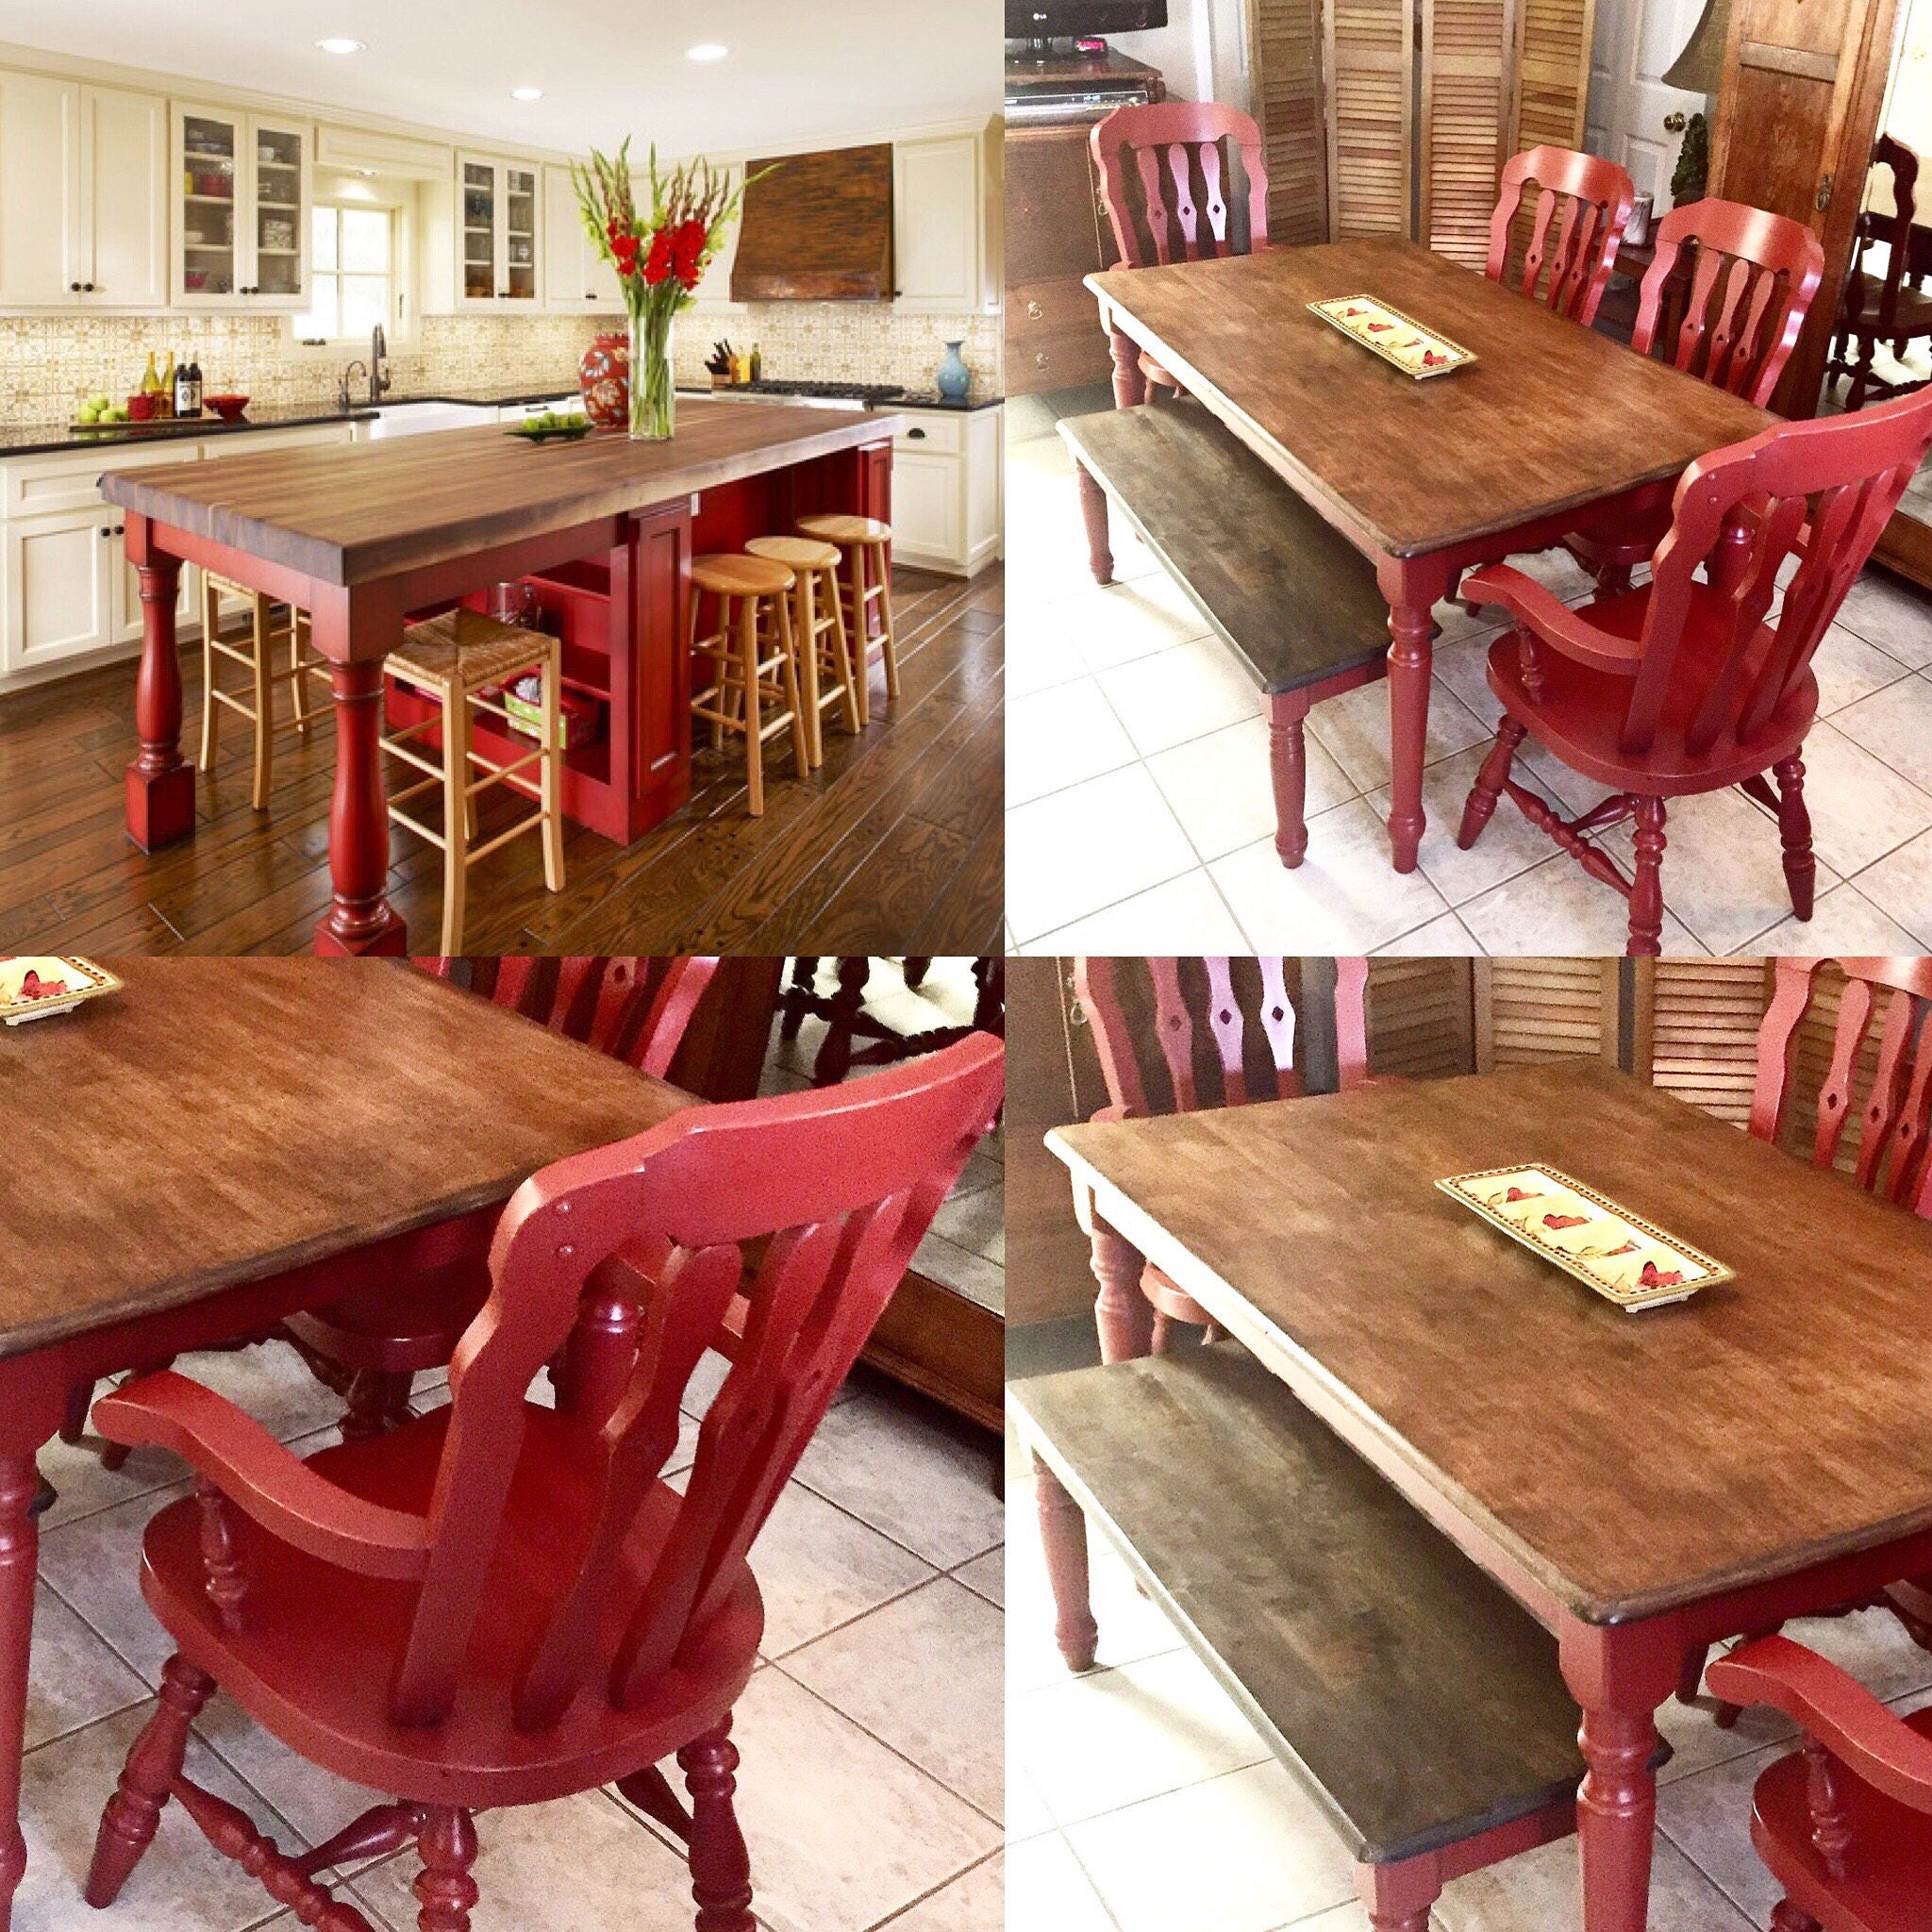 Farm Table Farmhouse Dining Chairs Painted Red Rustic Distressed Maple  Butcher Block Wood Kitchen Cottage Bench SHIPPING NOT FREE